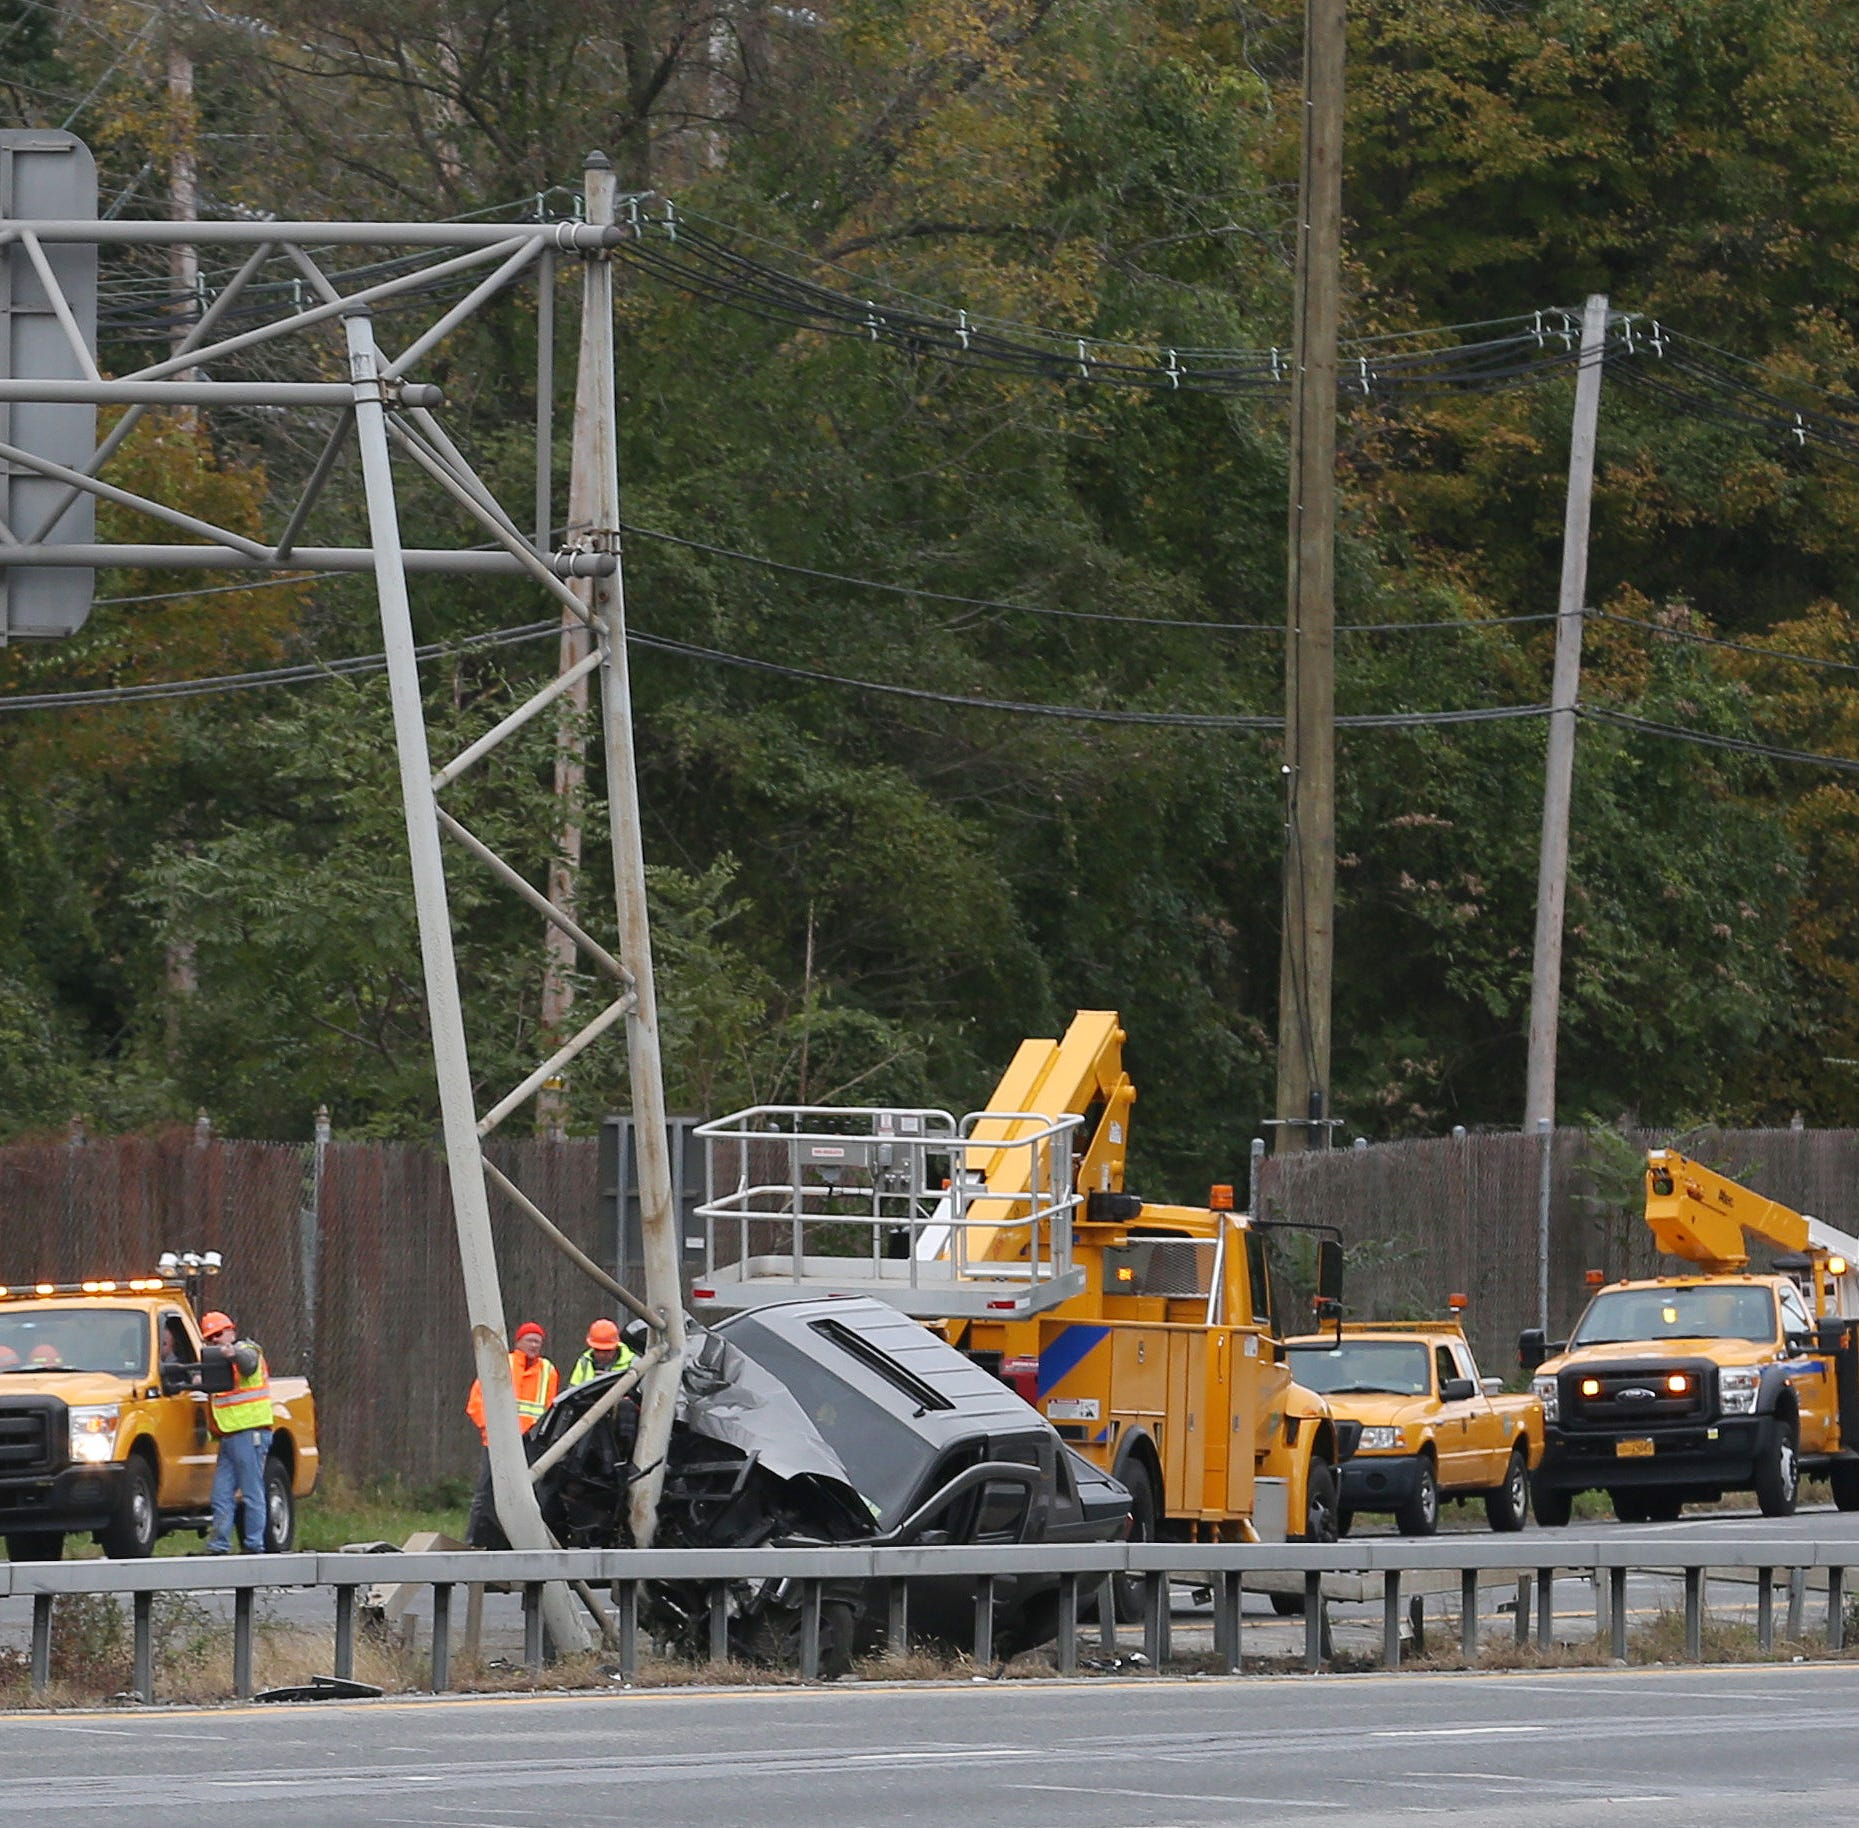 684 crash: Police await crane to clear truck